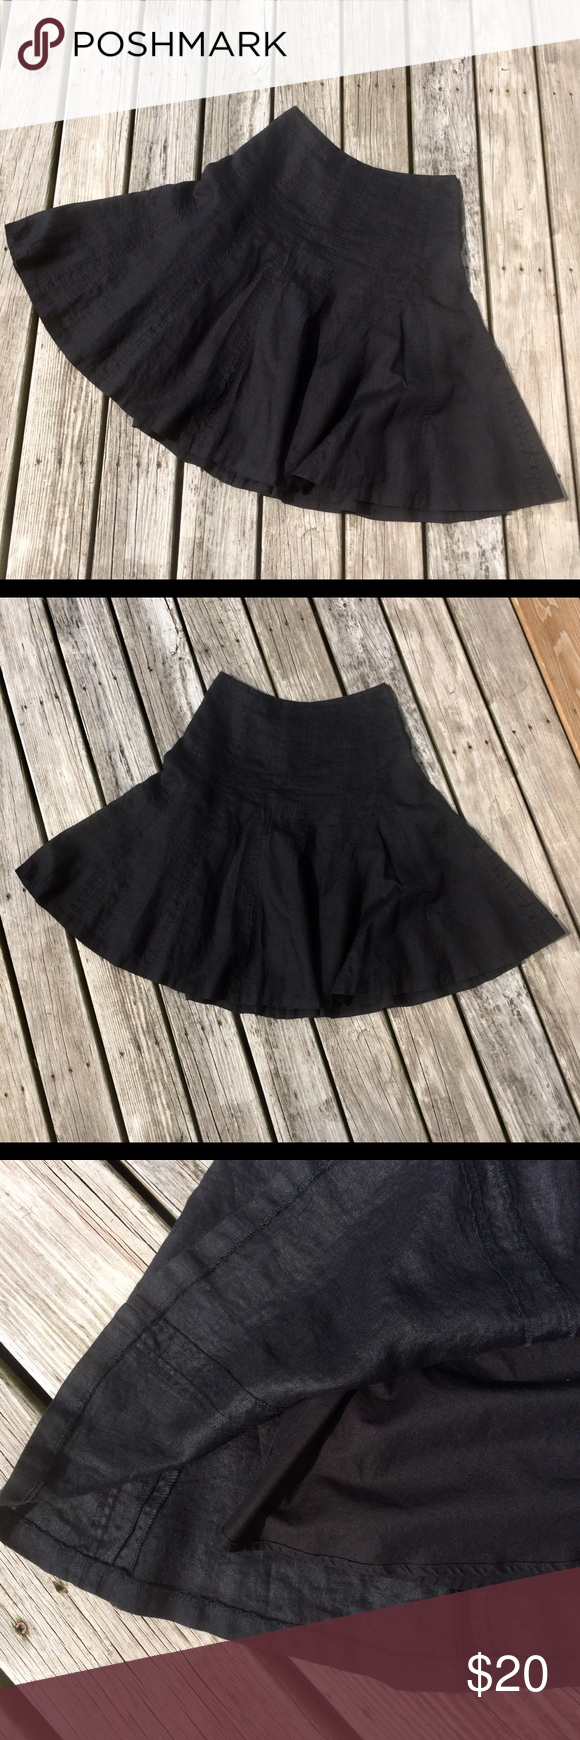 """Ralph Lauren Black Linen Circular Skirt Petite This a twirling skirt for grown ups! Classy black linen drop waist skirt with fun circular styling Fully lined Hidden side zipper closure  The care tag says """"Dry clean""""- this skirt has been machine laundered and hung to dry and has lived to tell about it  Ralph Lauren Black Linen Circular Skirt Petite This a twirling skirt for grown ups! Classy black linen drop waist skirt with fun circular styling Fully lined Hidden side zipper closure  The car #twirlskirt"""